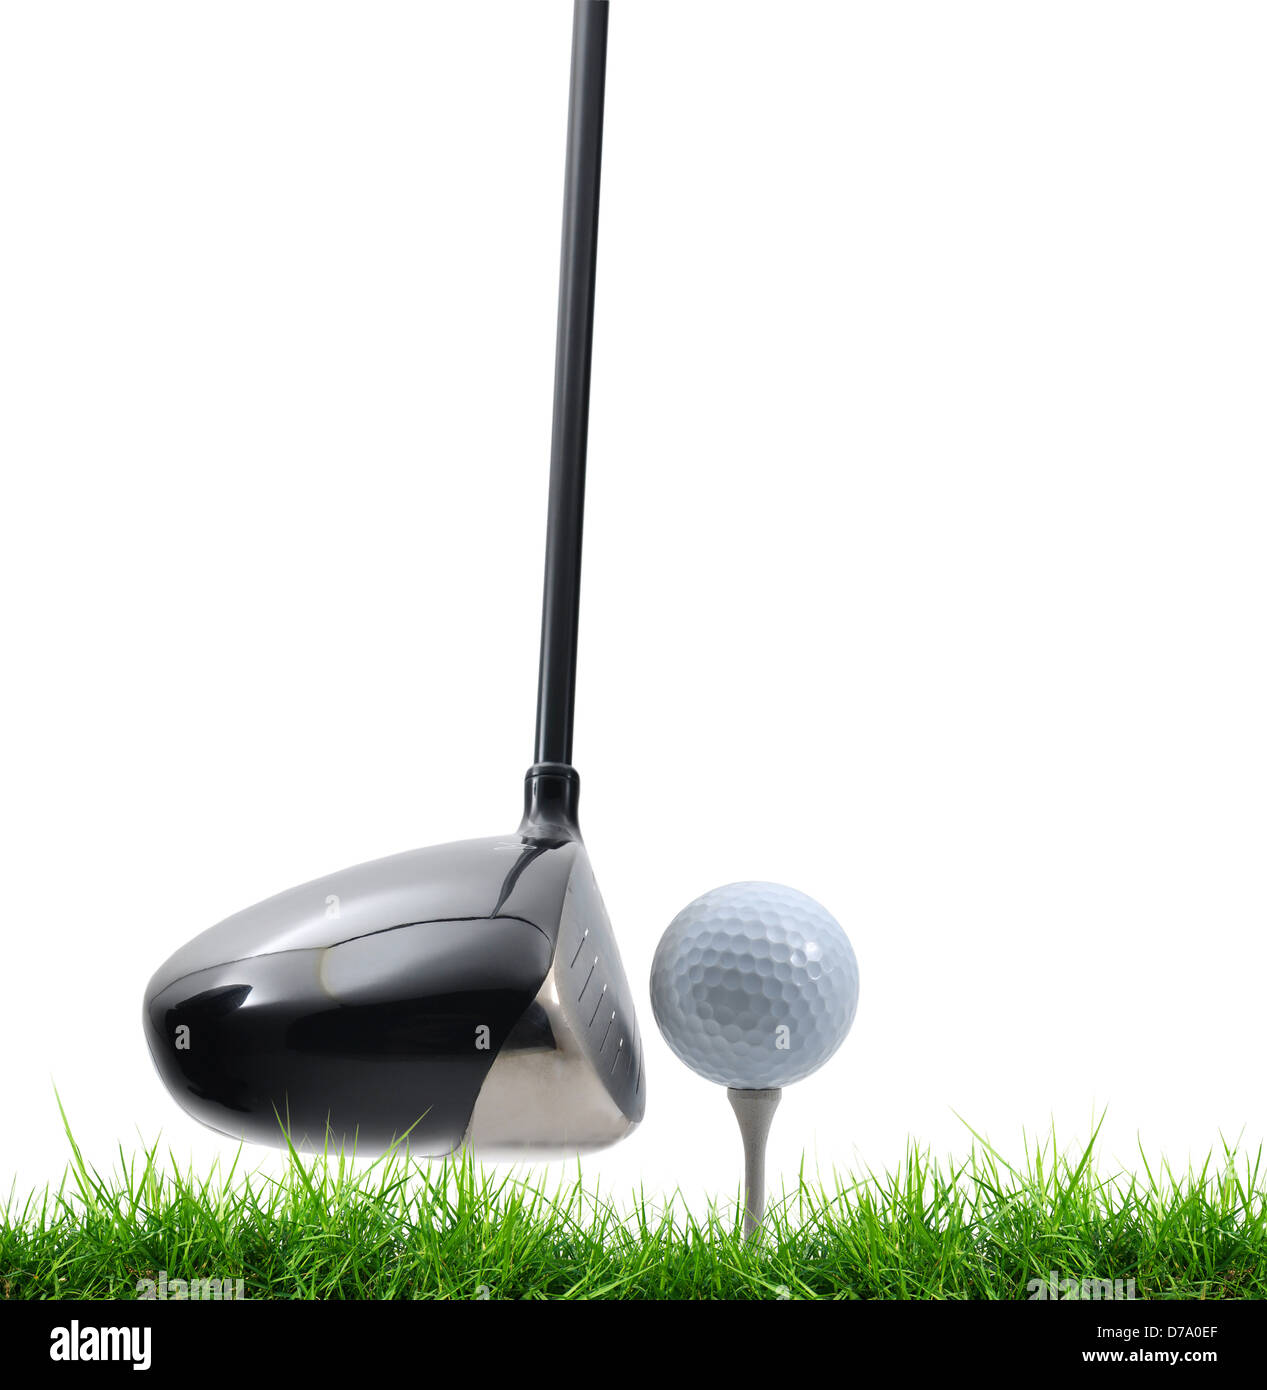 tee off on white background - Stock Image